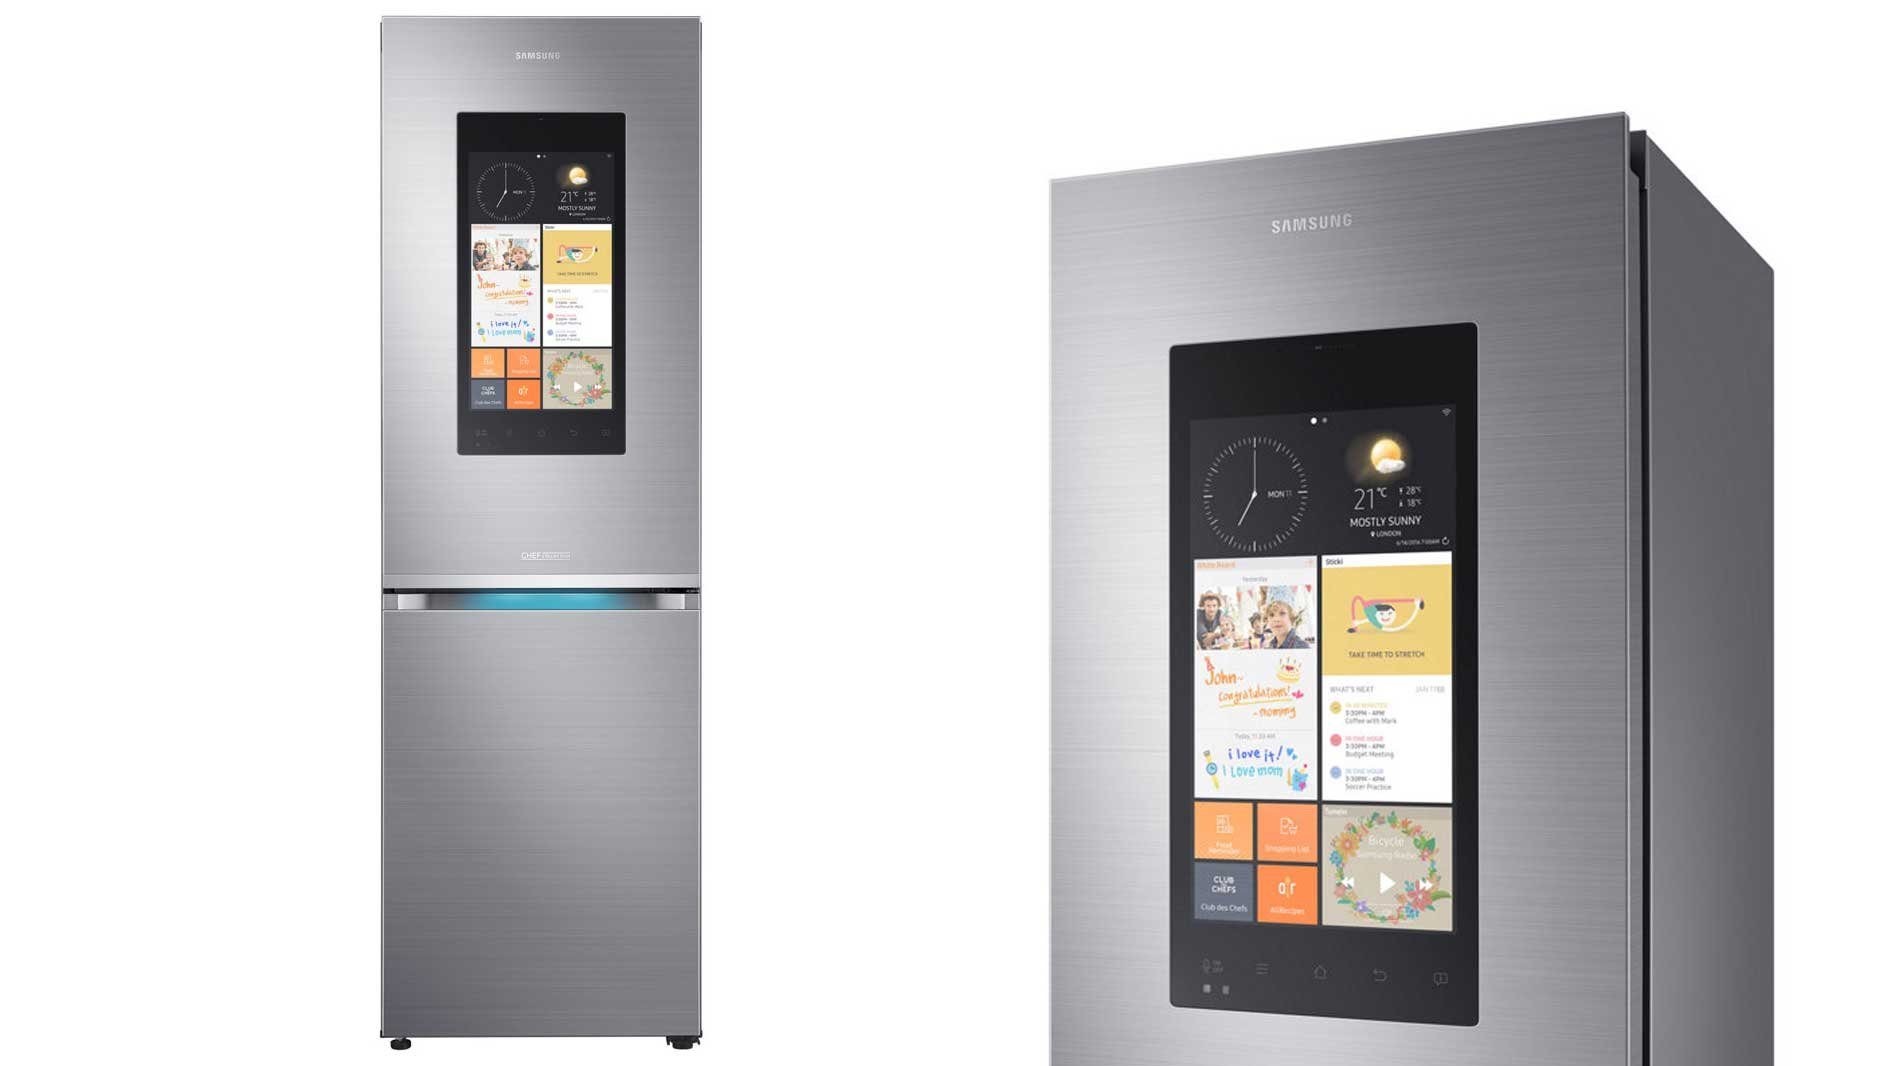 Large Fridges And Freezers Part - 23: Samsungu0027s Family Hub Isnu0027t Your Average Fridge Freezer. Aside From Its  Ample Capacity For Both Chilled And Frozen Products (356 Litres In Total),  ...